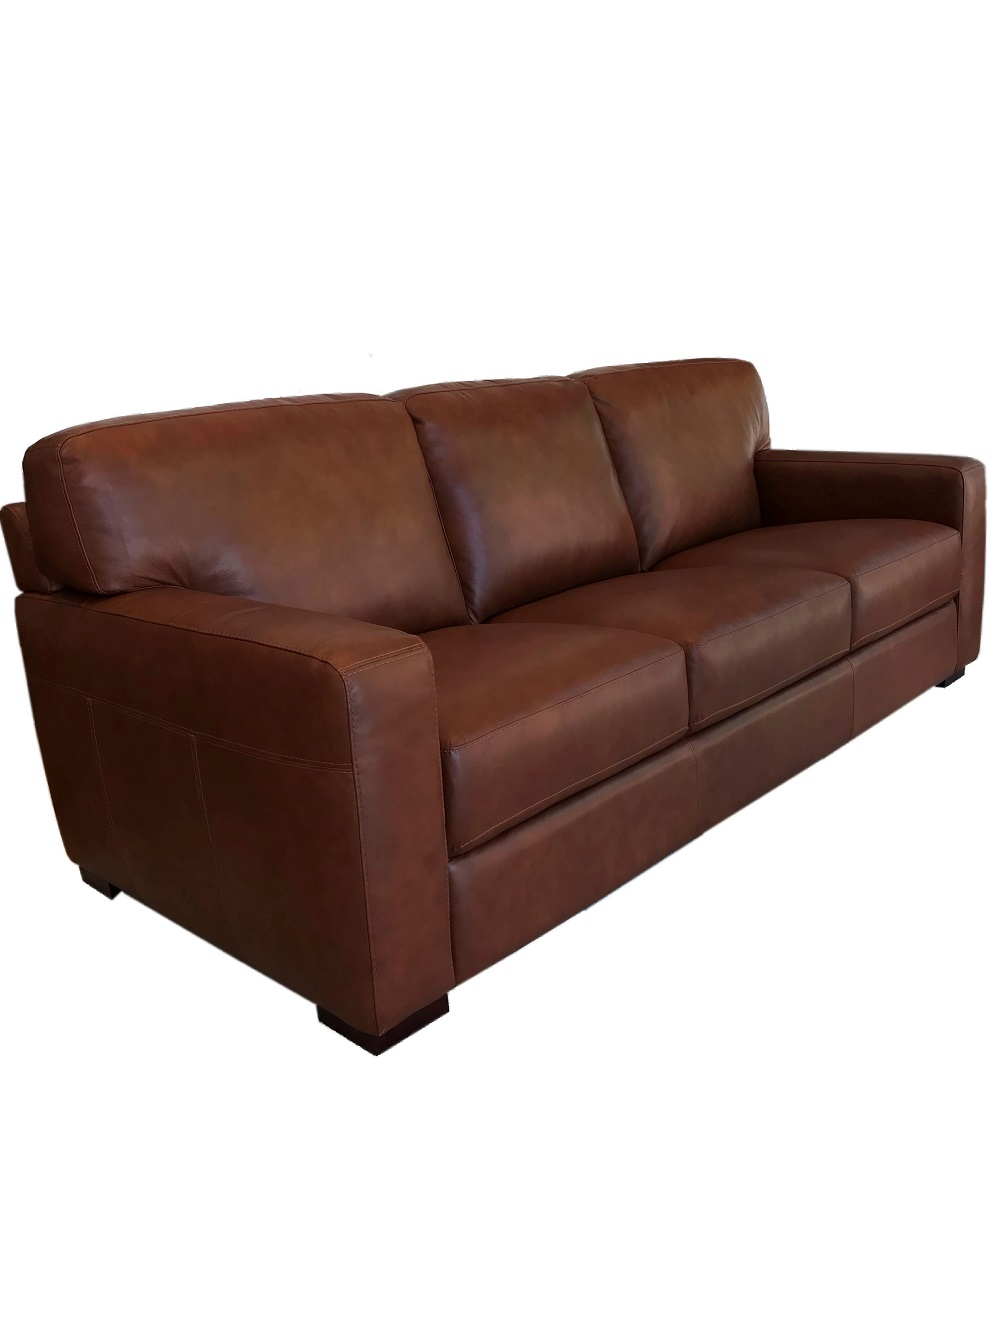 ZA10 3 Seater Leather Sofa by Milano and Design - Make Your House a ...